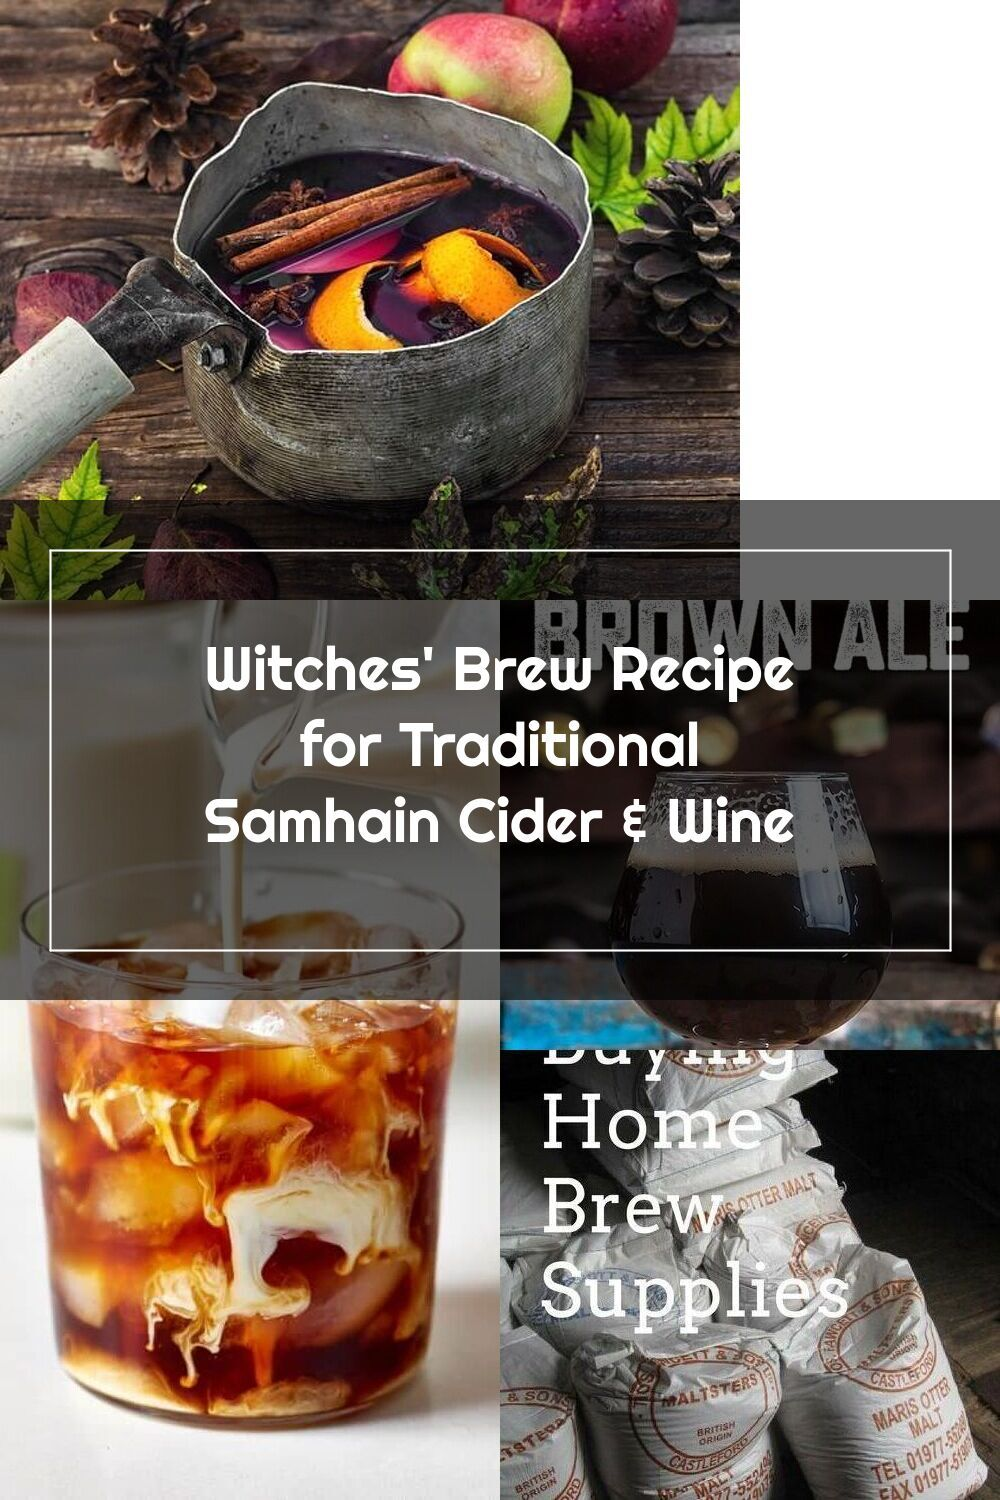 Witches Brew Recipe For Traditional Samhain Cider Wine Upon The Coming In 2020 Witch Brew Recipe Cider Home Brew Supplies